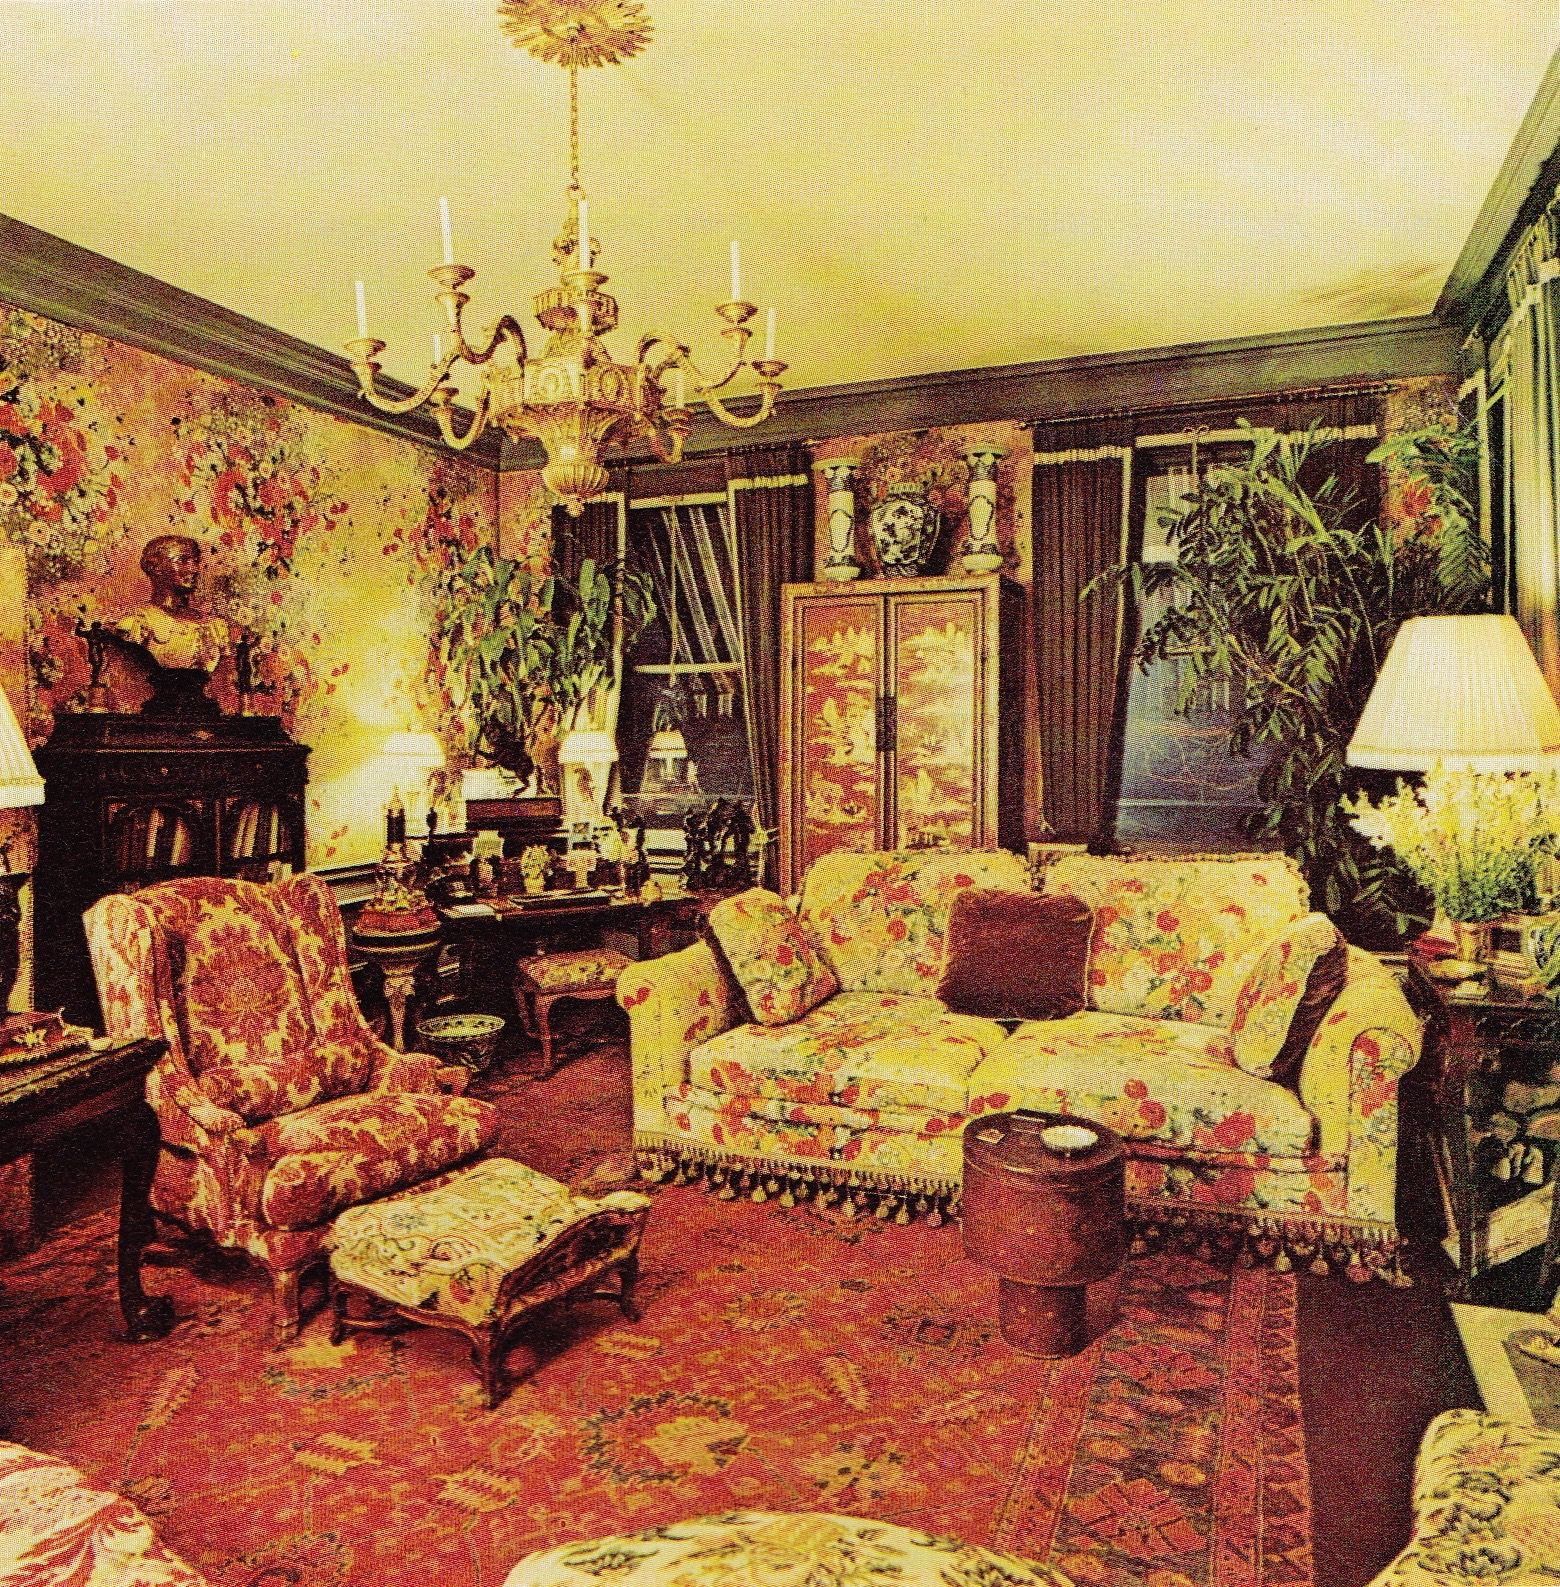 Tiger Rug Ri: The Manhattan Townhouse Of Robert Denning And Vincent